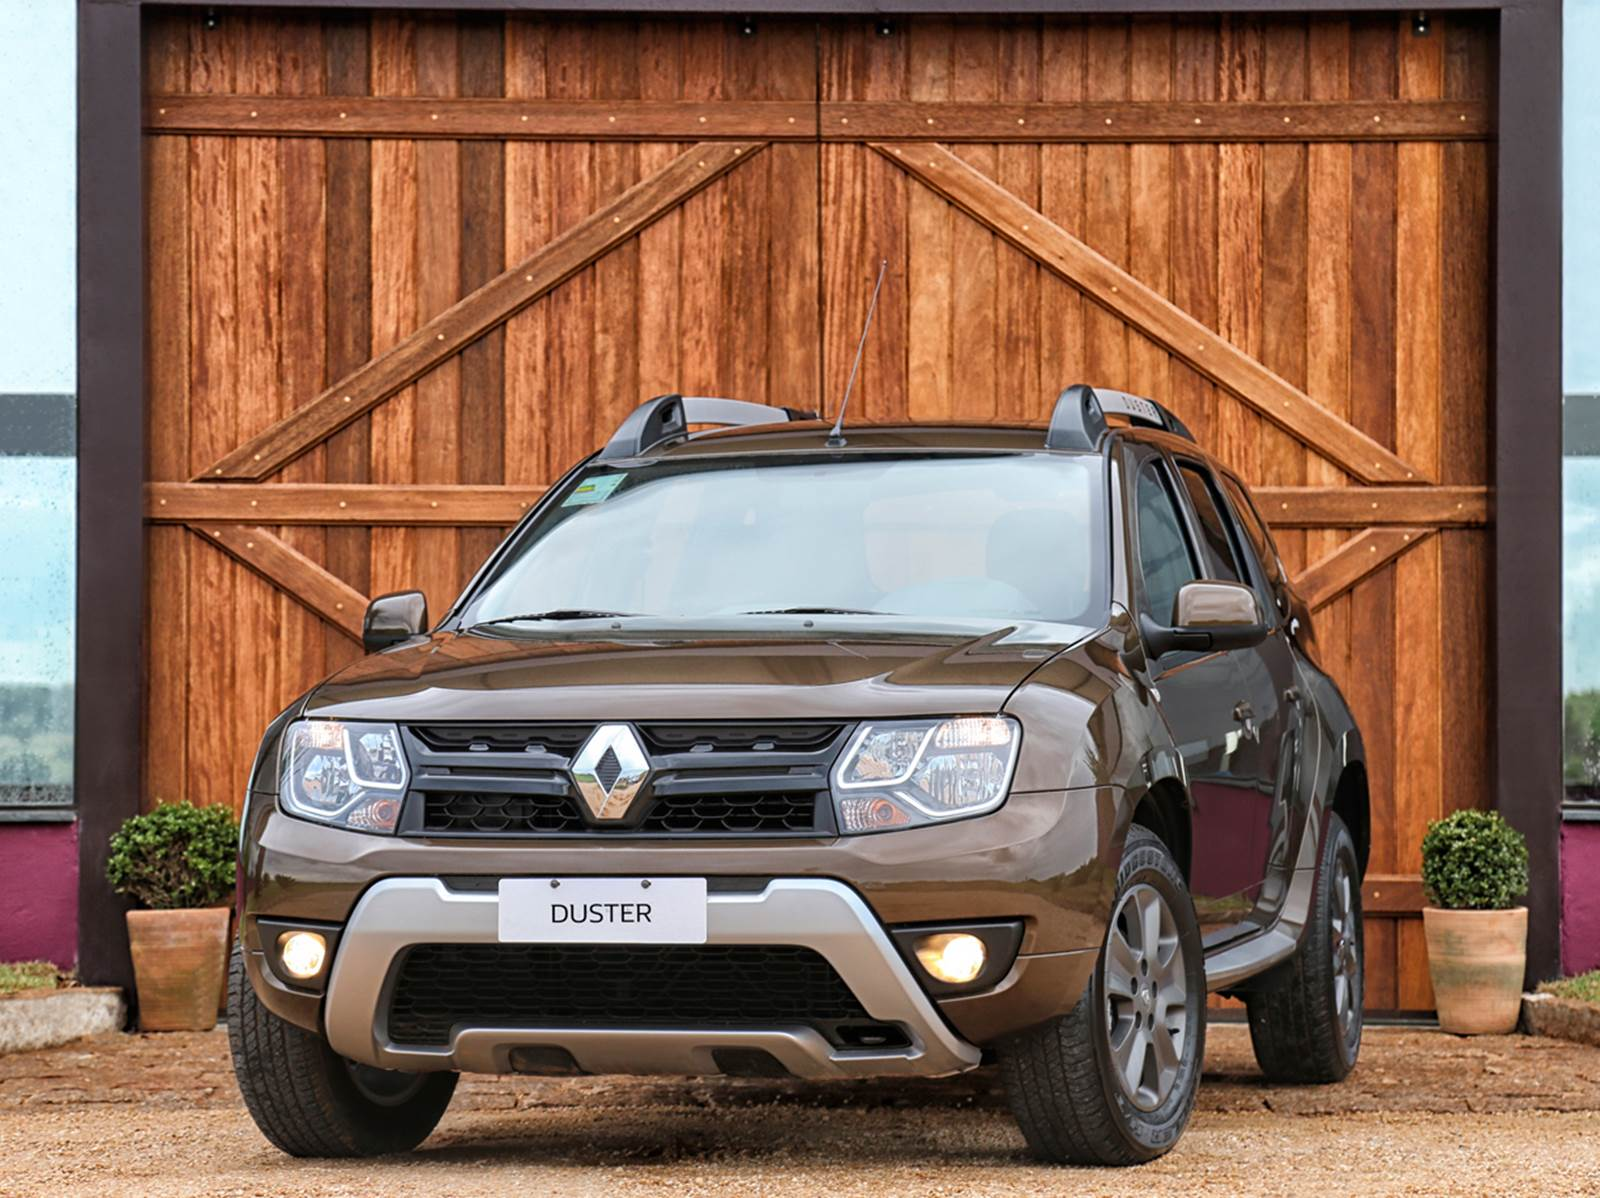 2016 Renault Duster Launched With New Look Better Economy In Brazil